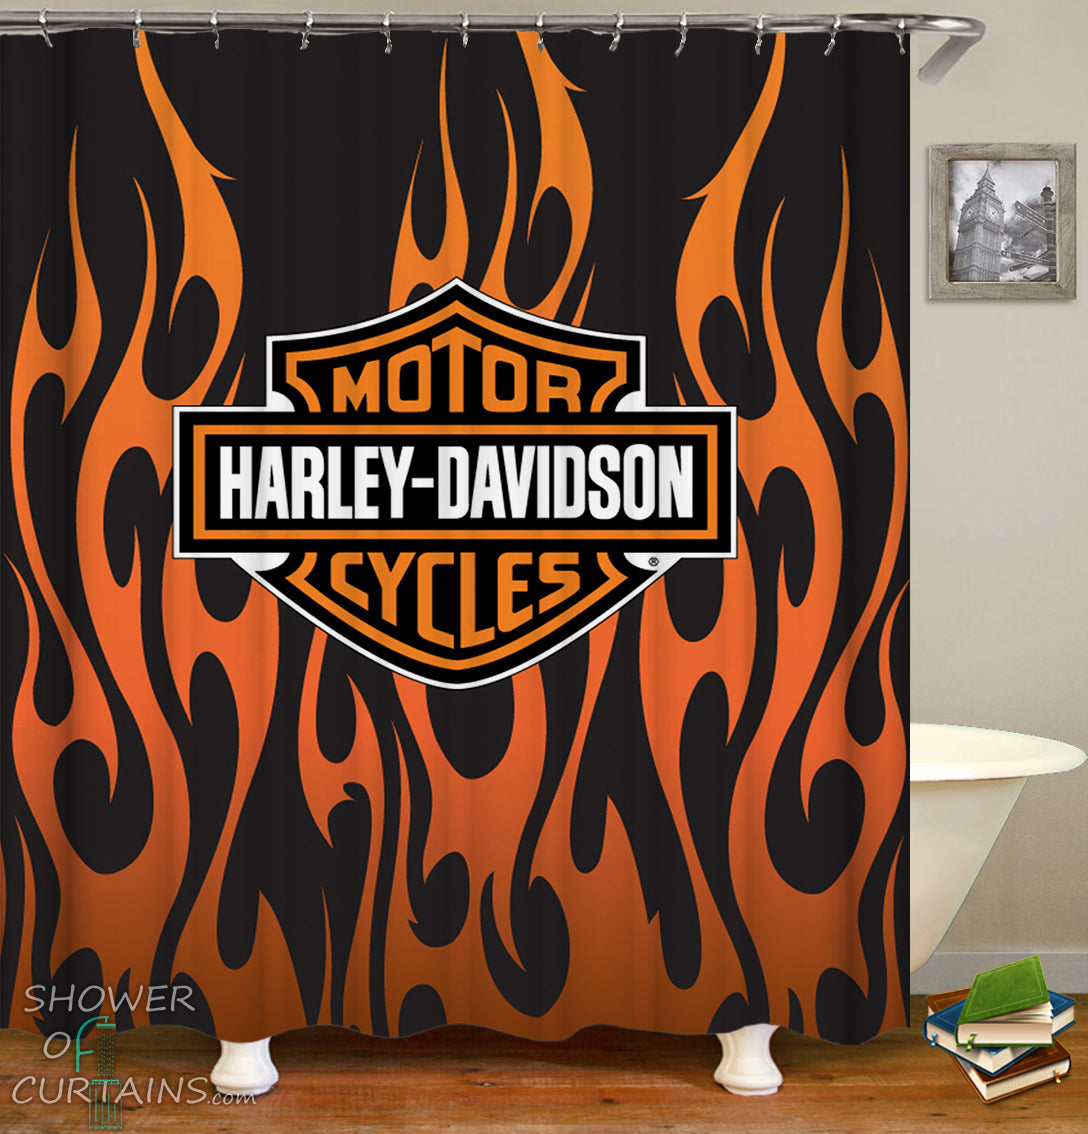 Shower Curtains Harley Davidson Flames Shower Of Curtains